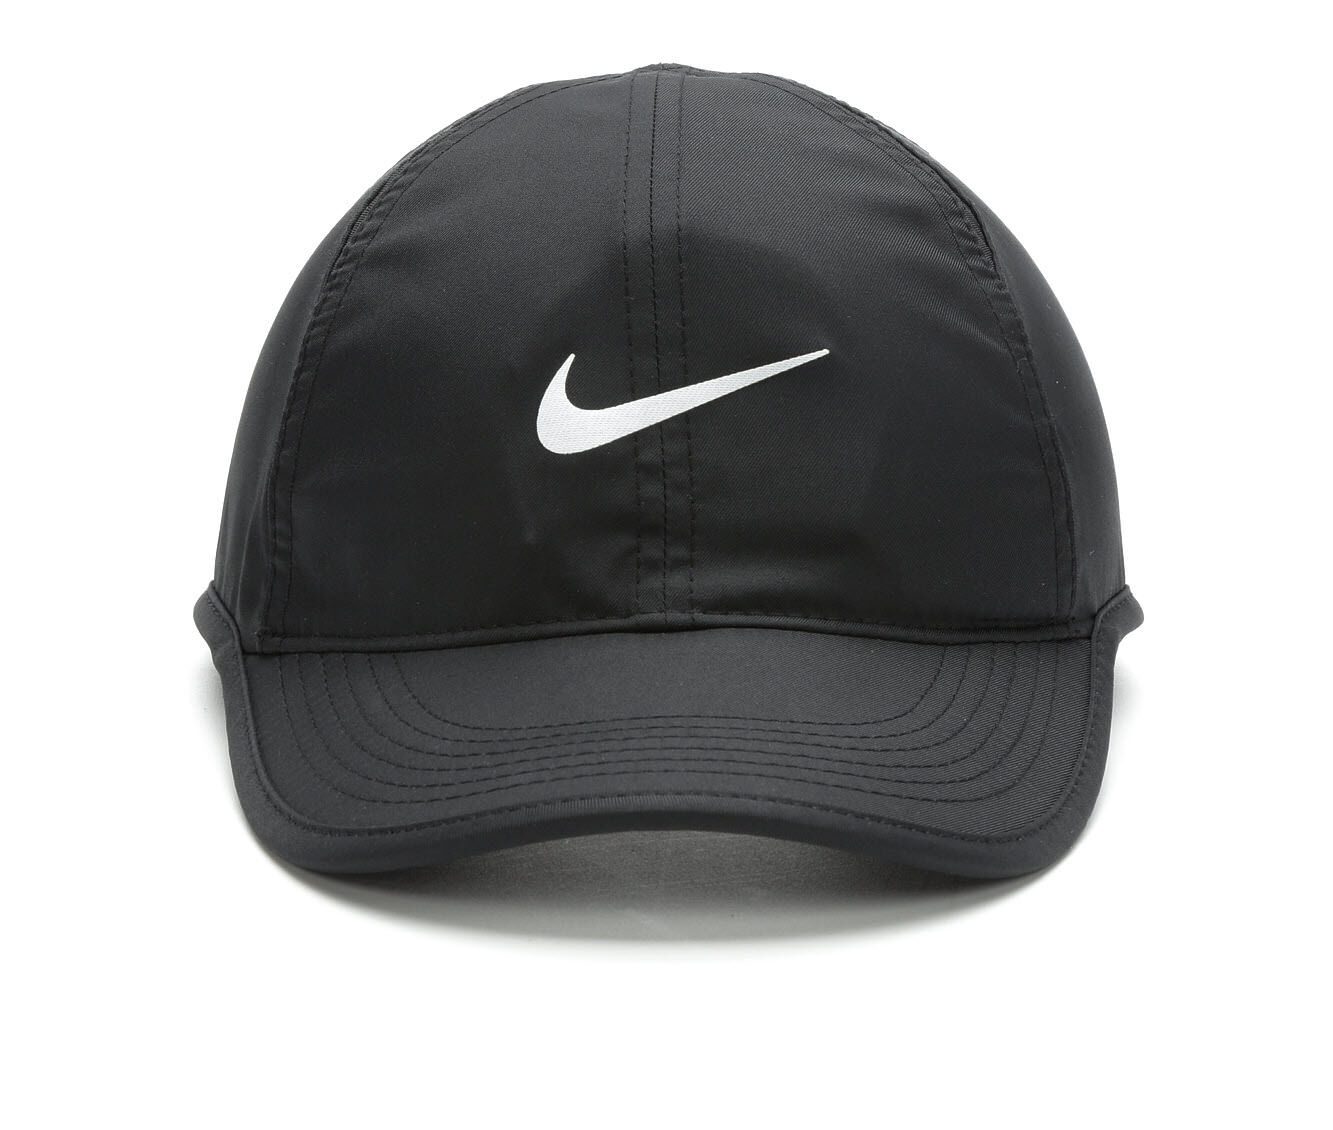 official photos ebcf2 e9817 low cost nike featherlight adjustable cap d8f05 a43f0